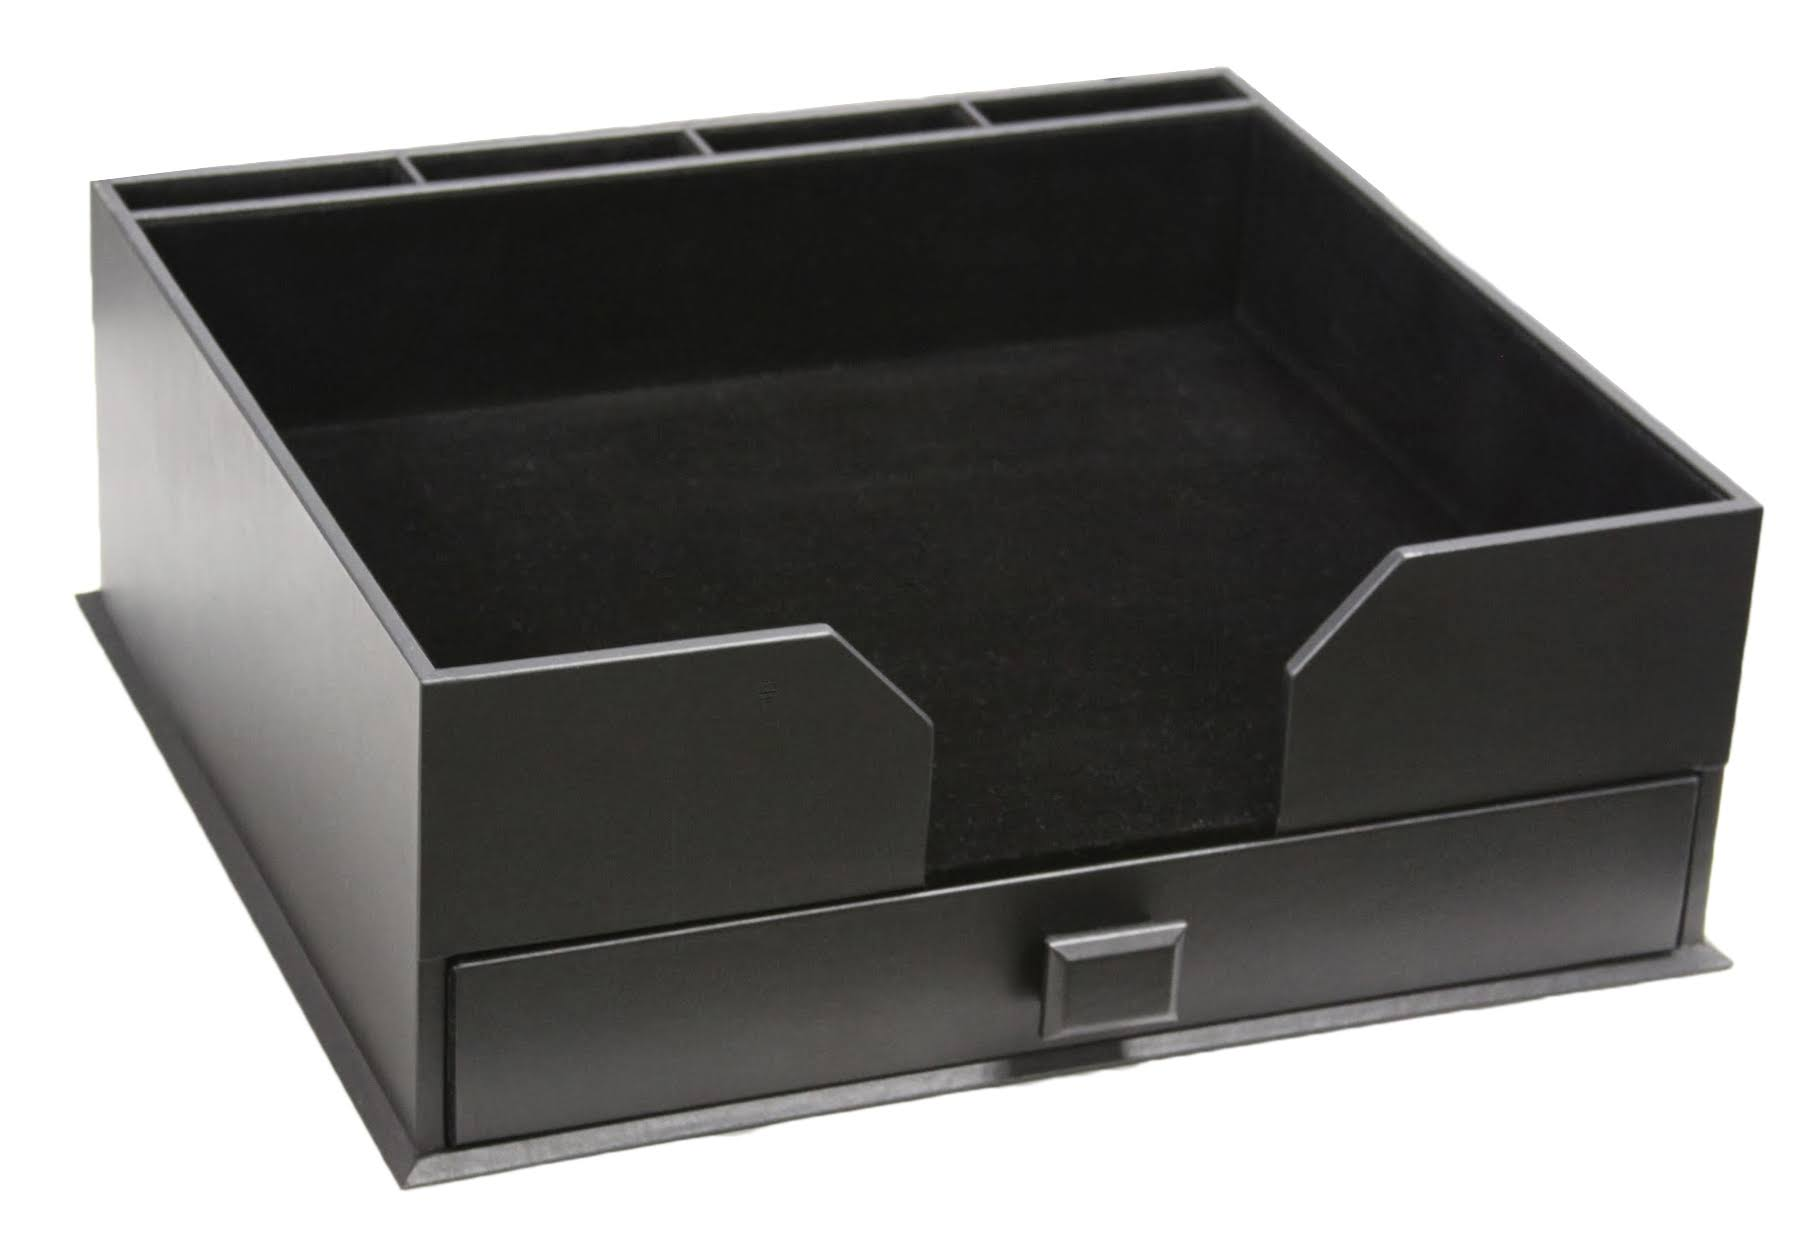 Black Leather Conference Pad Holder & Organizer WAUCUST31049B